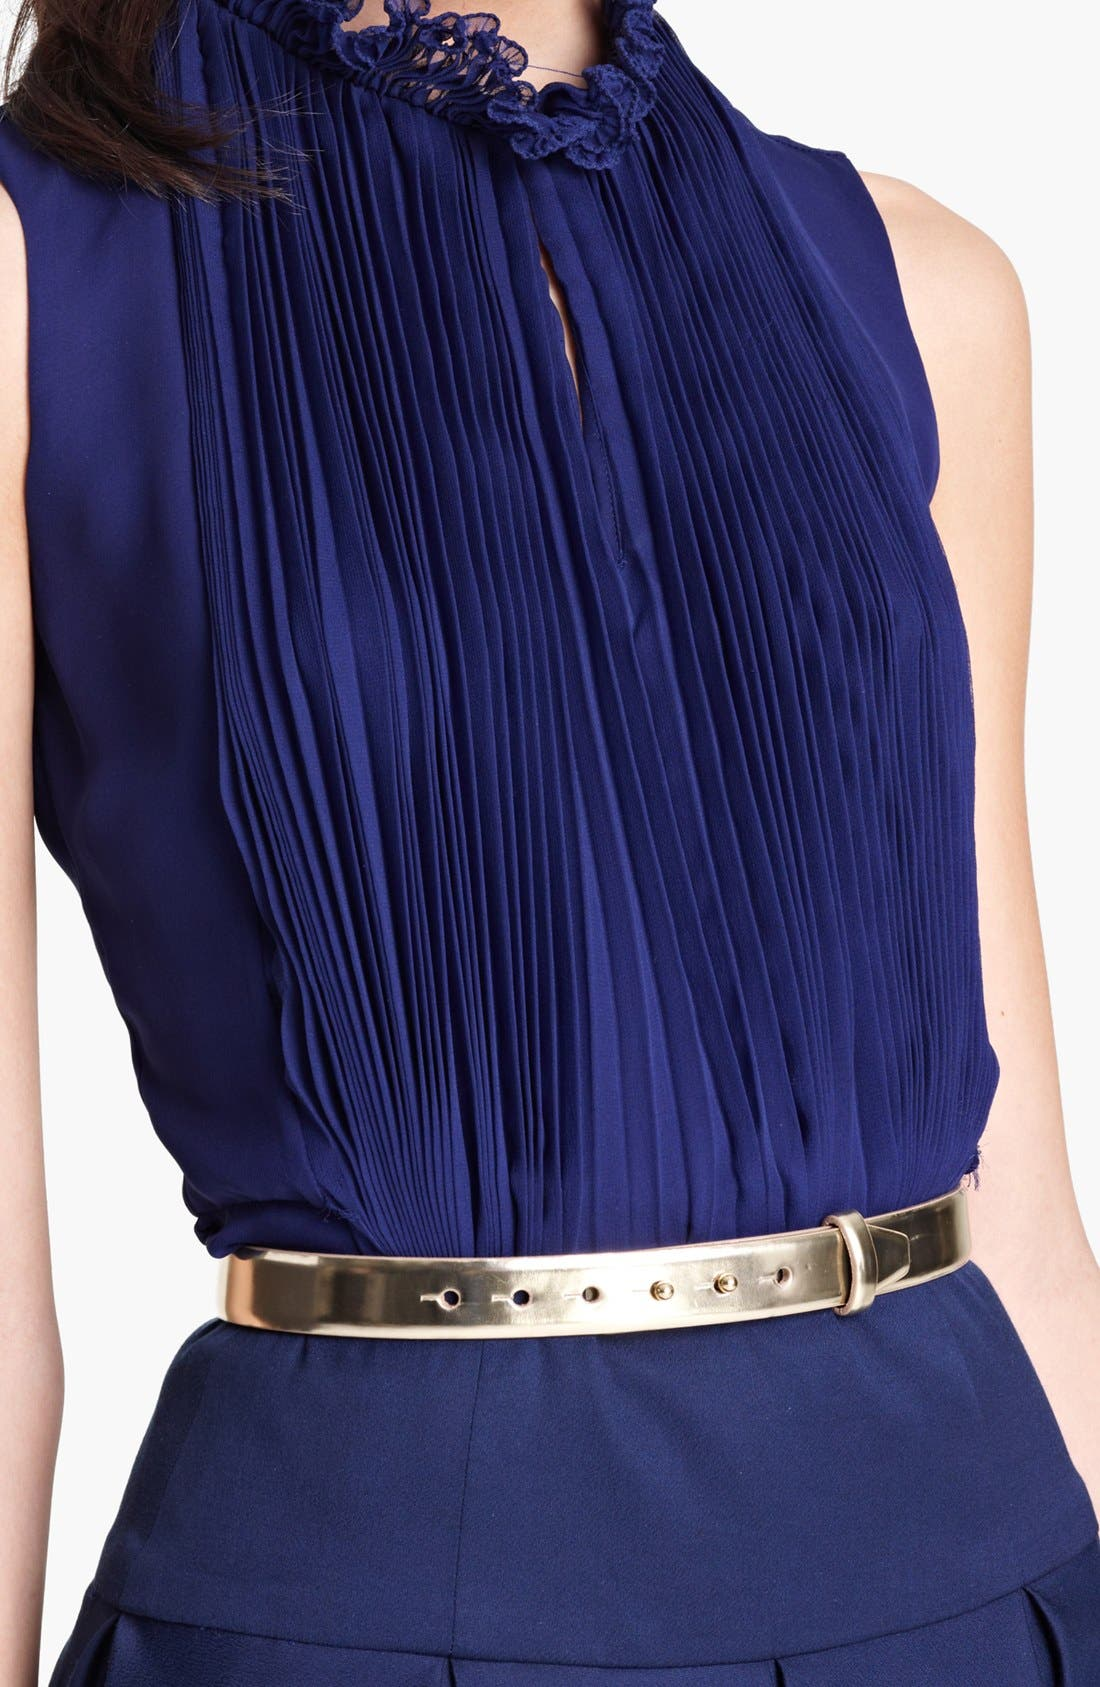 Main Image - Oscar de la Renta Slim Metallic Leather Belt